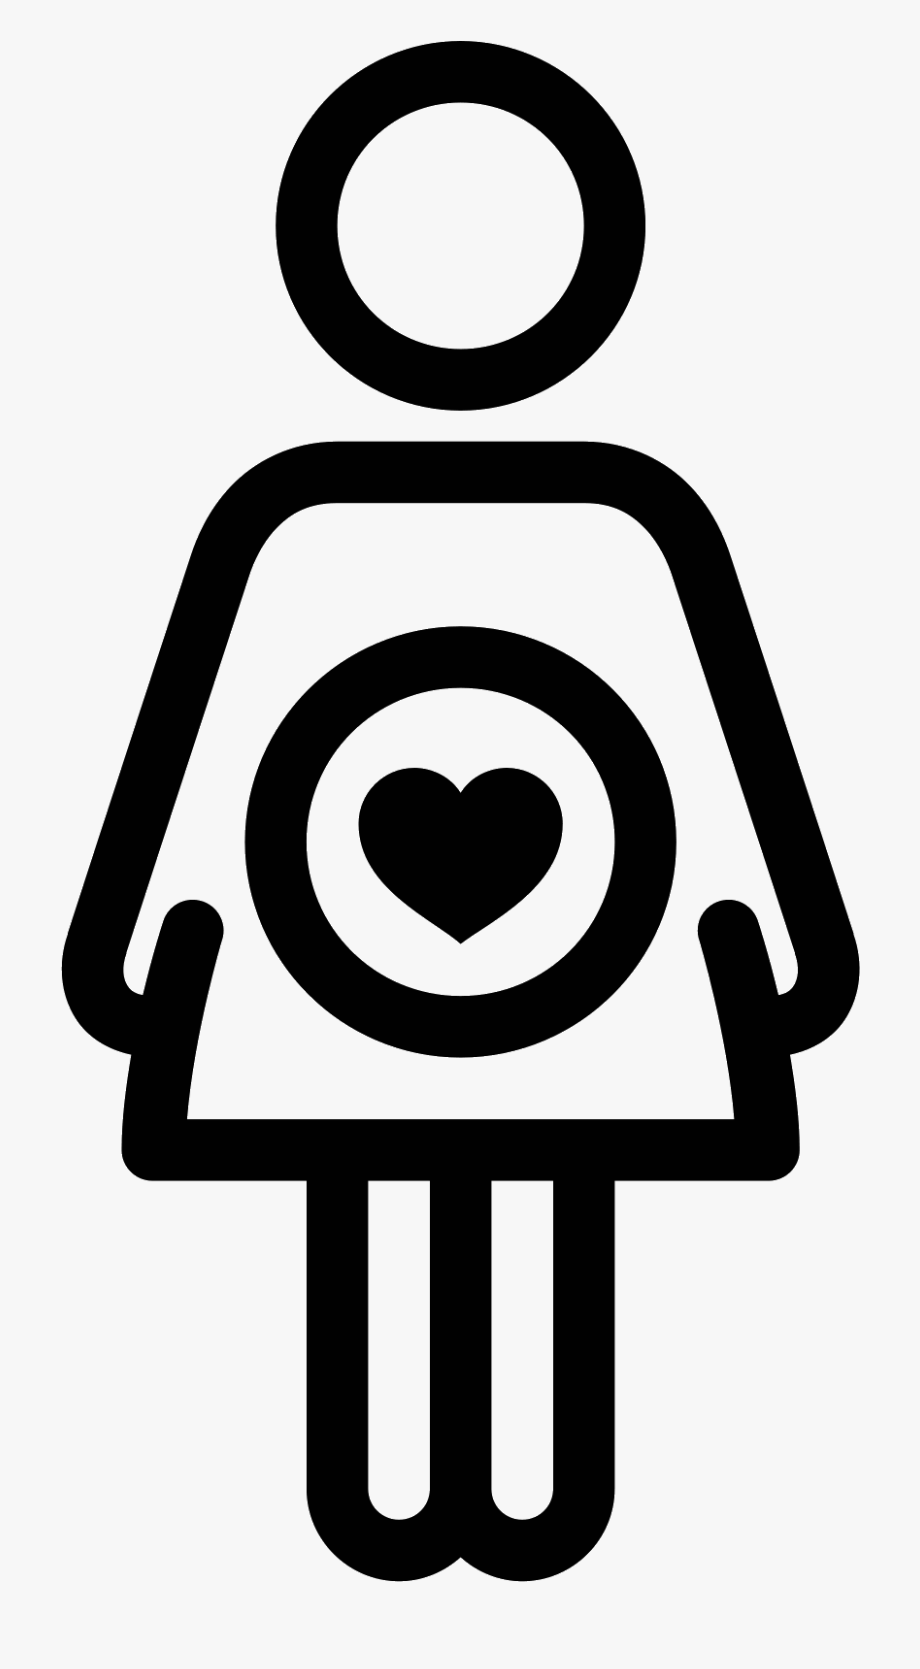 Clip Art Icon Free Download Png.